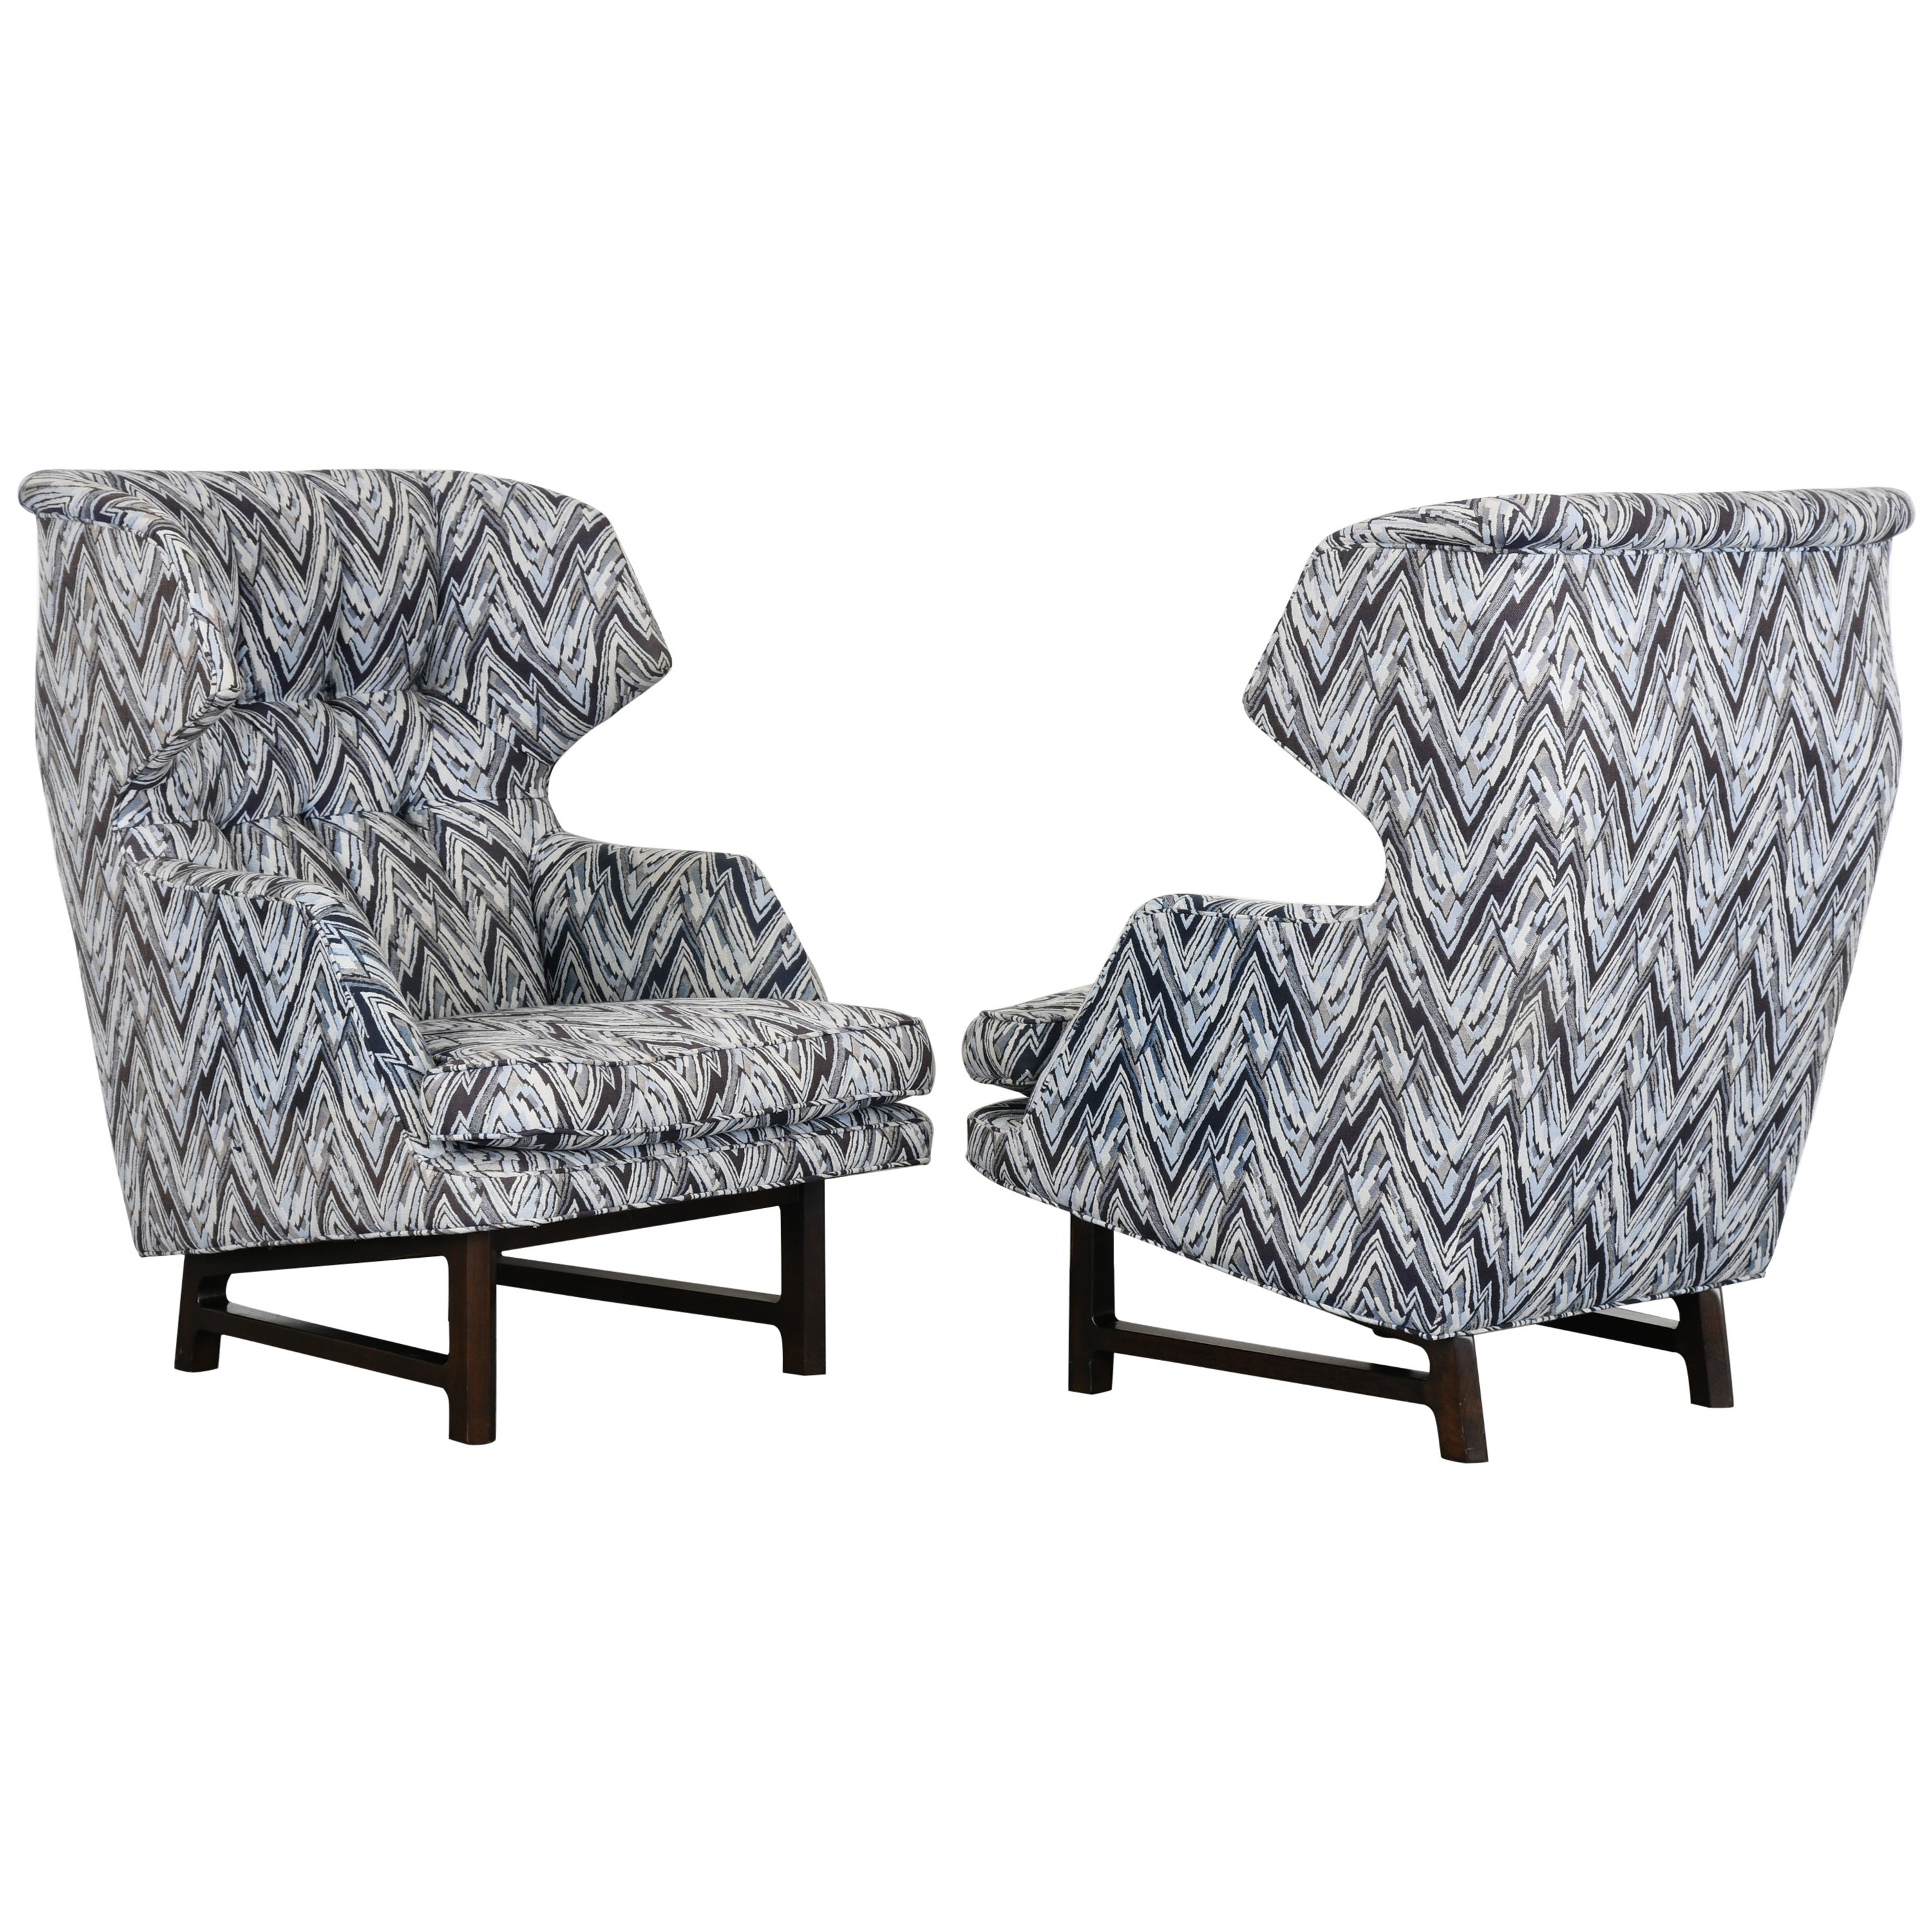 "Pair of Wingback ""Janus"" Lounge Chairs by Edward Wormley for Dunbar, 1960s"